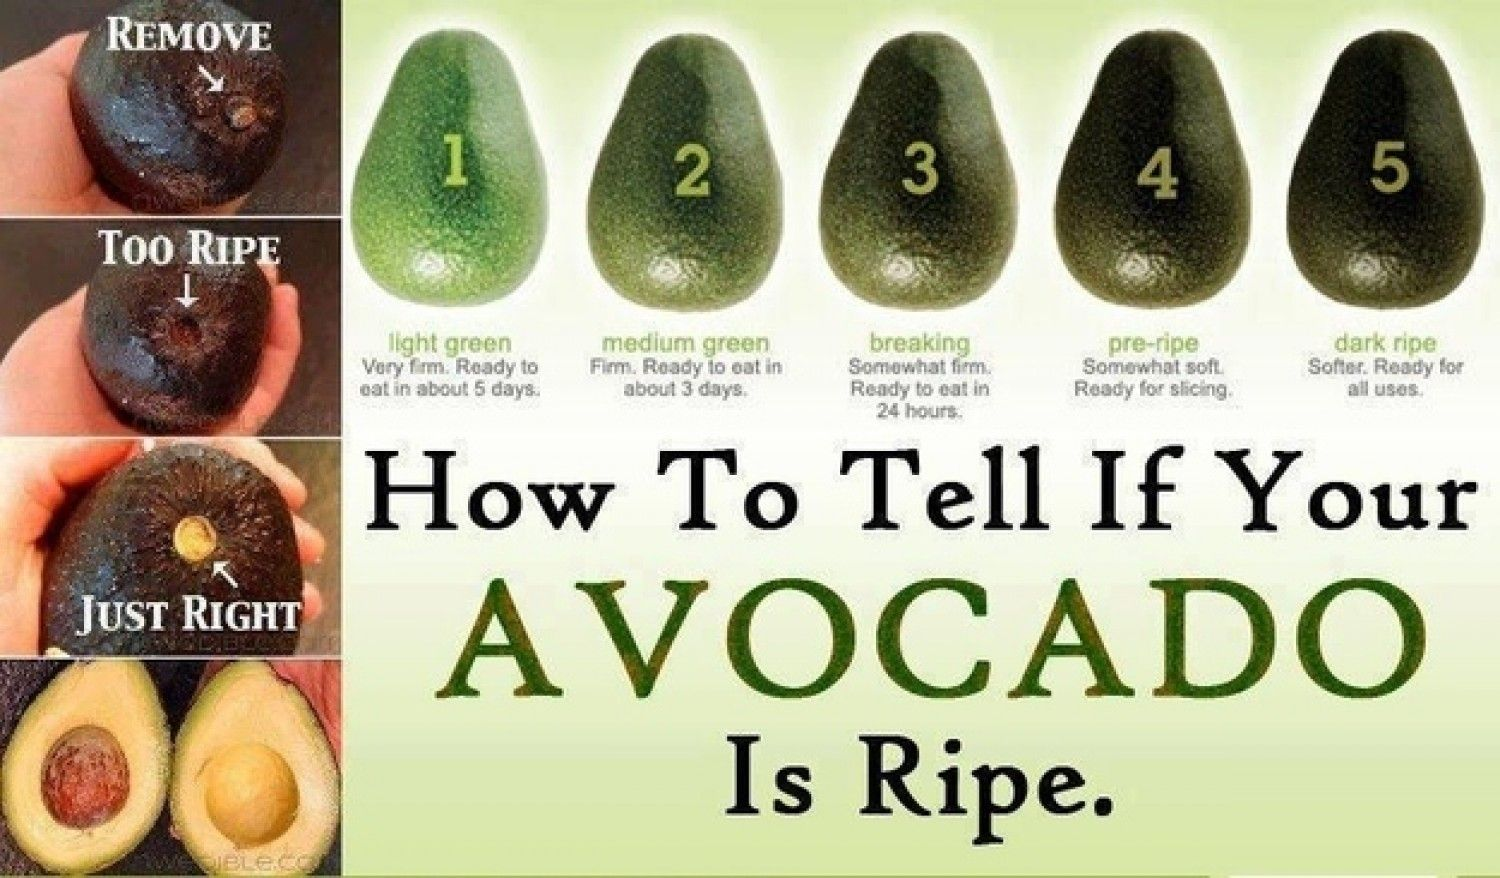 How to determine the ripeness of avocados in the store 60